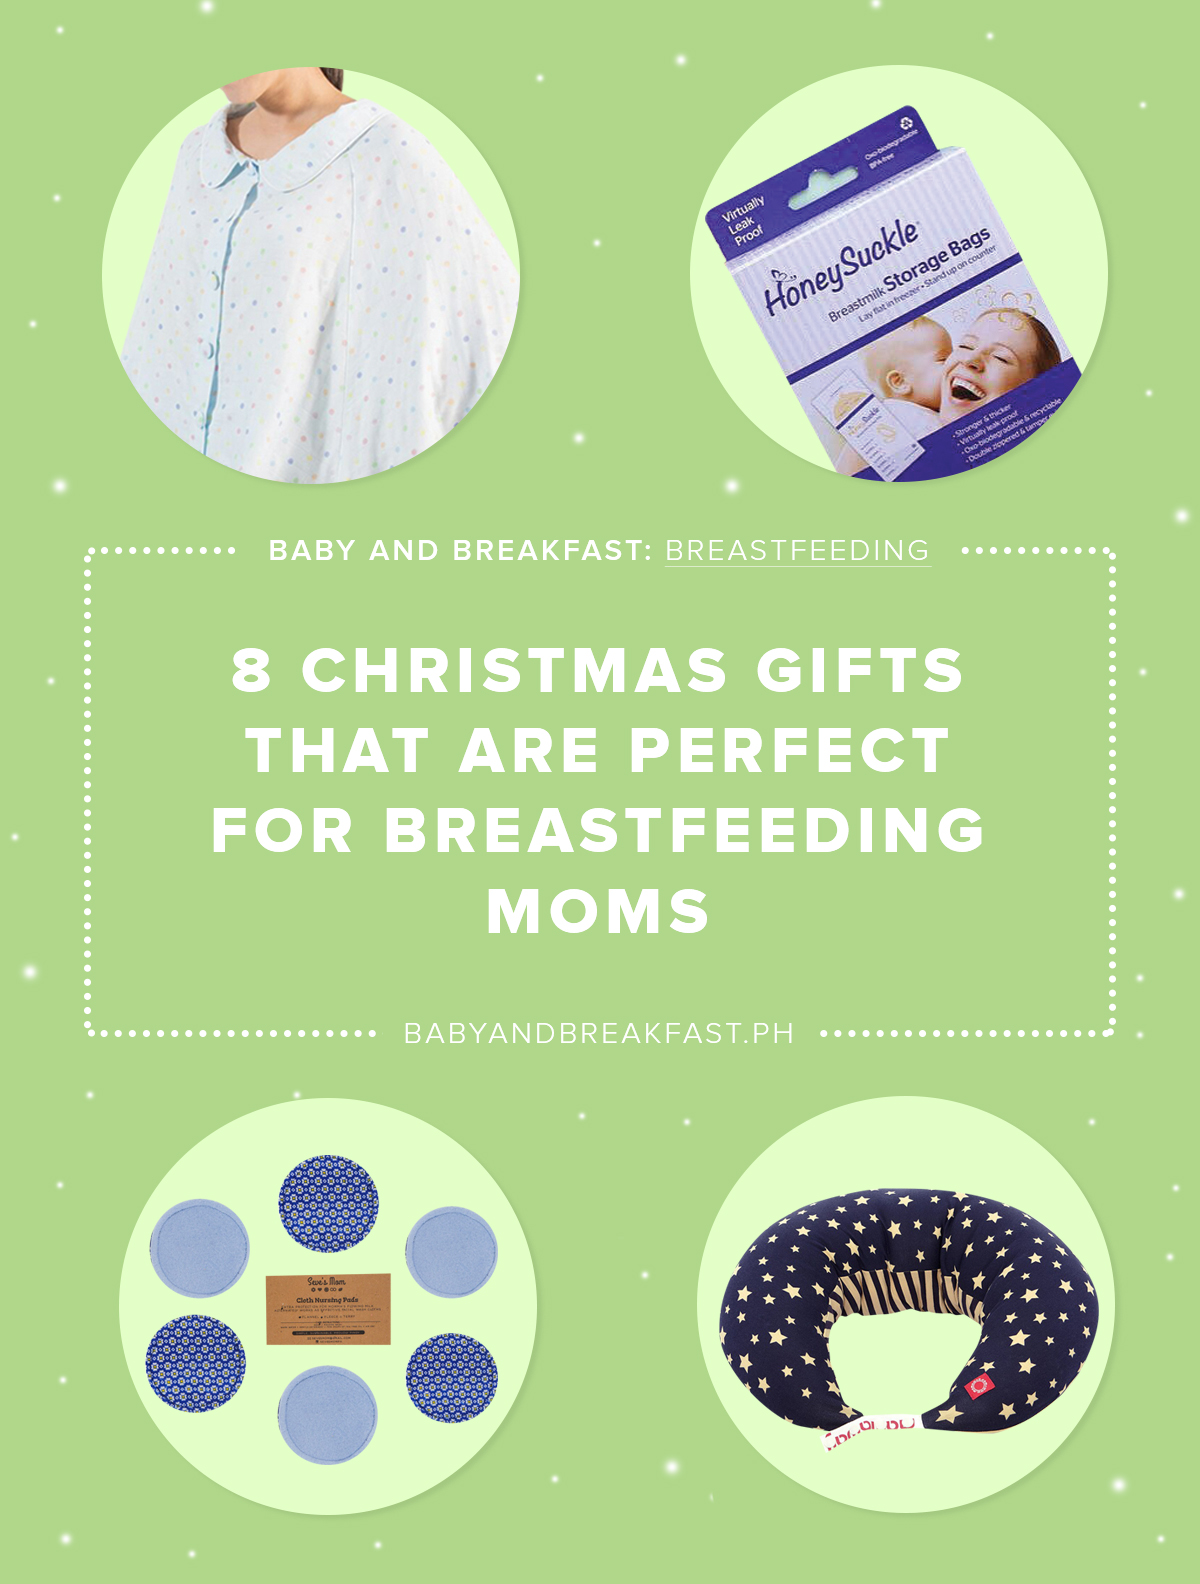 Baby and Breakfast: Breastfeeding 8 Christmas Gifts That Are Perfect for Breastfeeding Moms